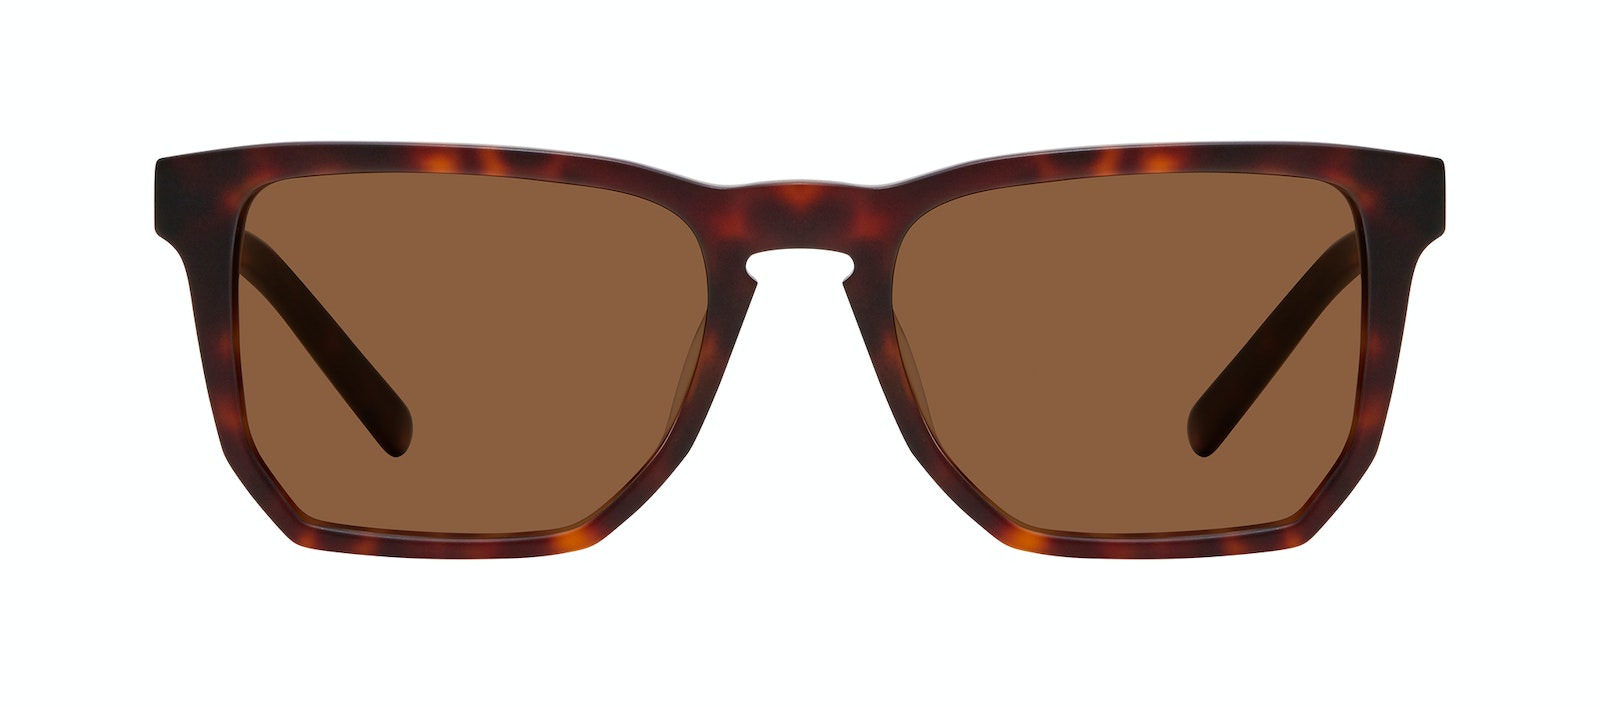 Affordable Fashion Glasses Square Sunglasses Men Andy Matte Tortoise Front